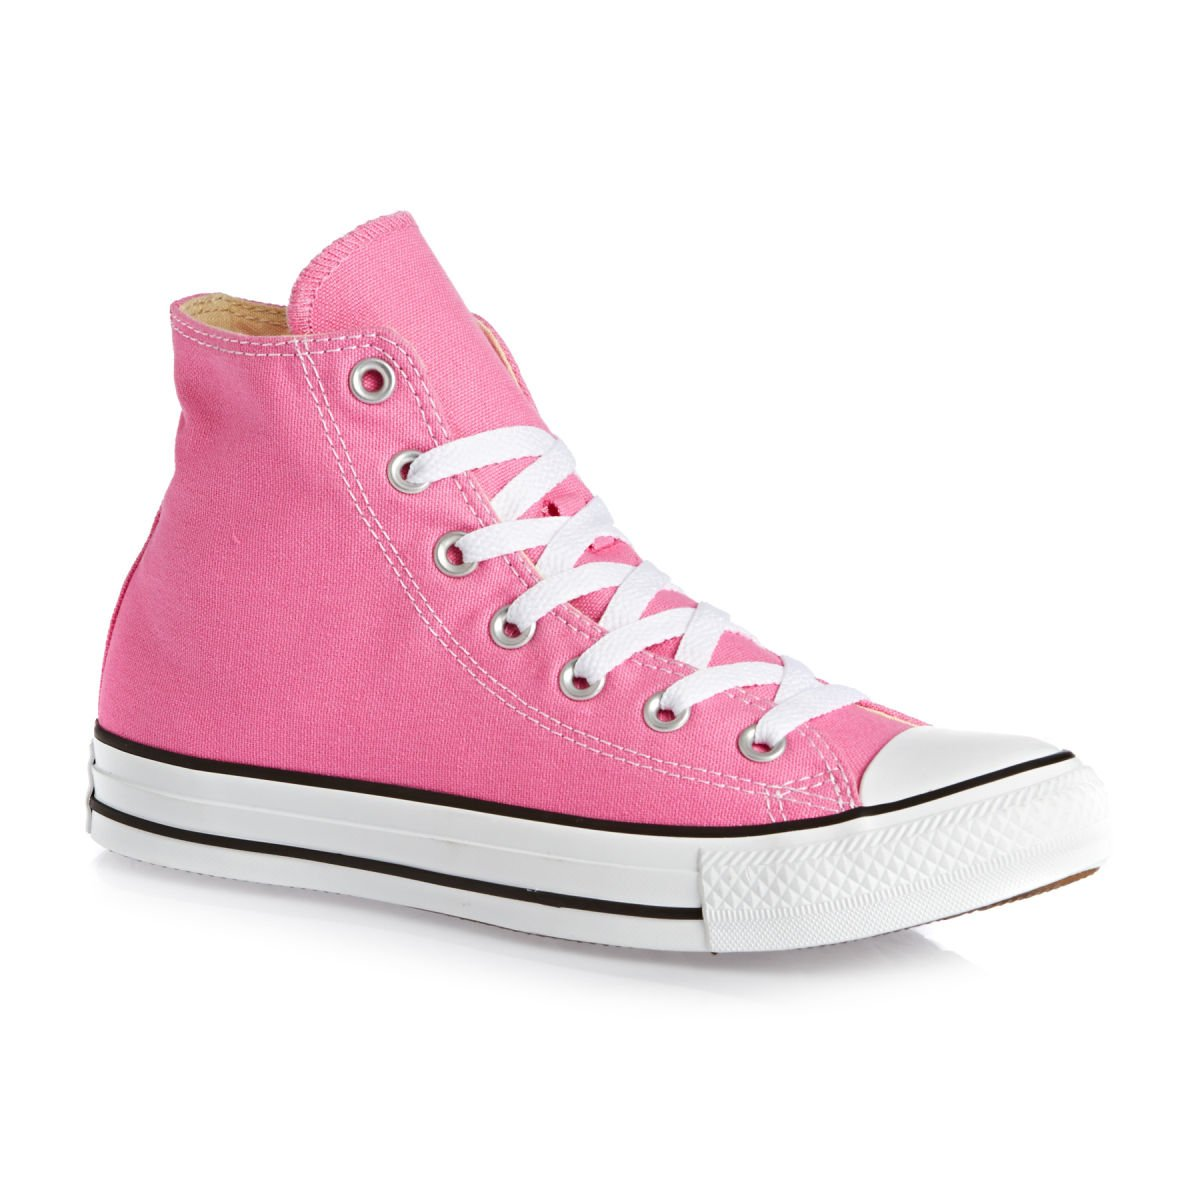 Converse Ctas Core Hi, Baskets Converse mode B00DMA3XDQ Core mixte adulte Rose (Pink/Pink) c7837ab - fast-weightloss-diet.space